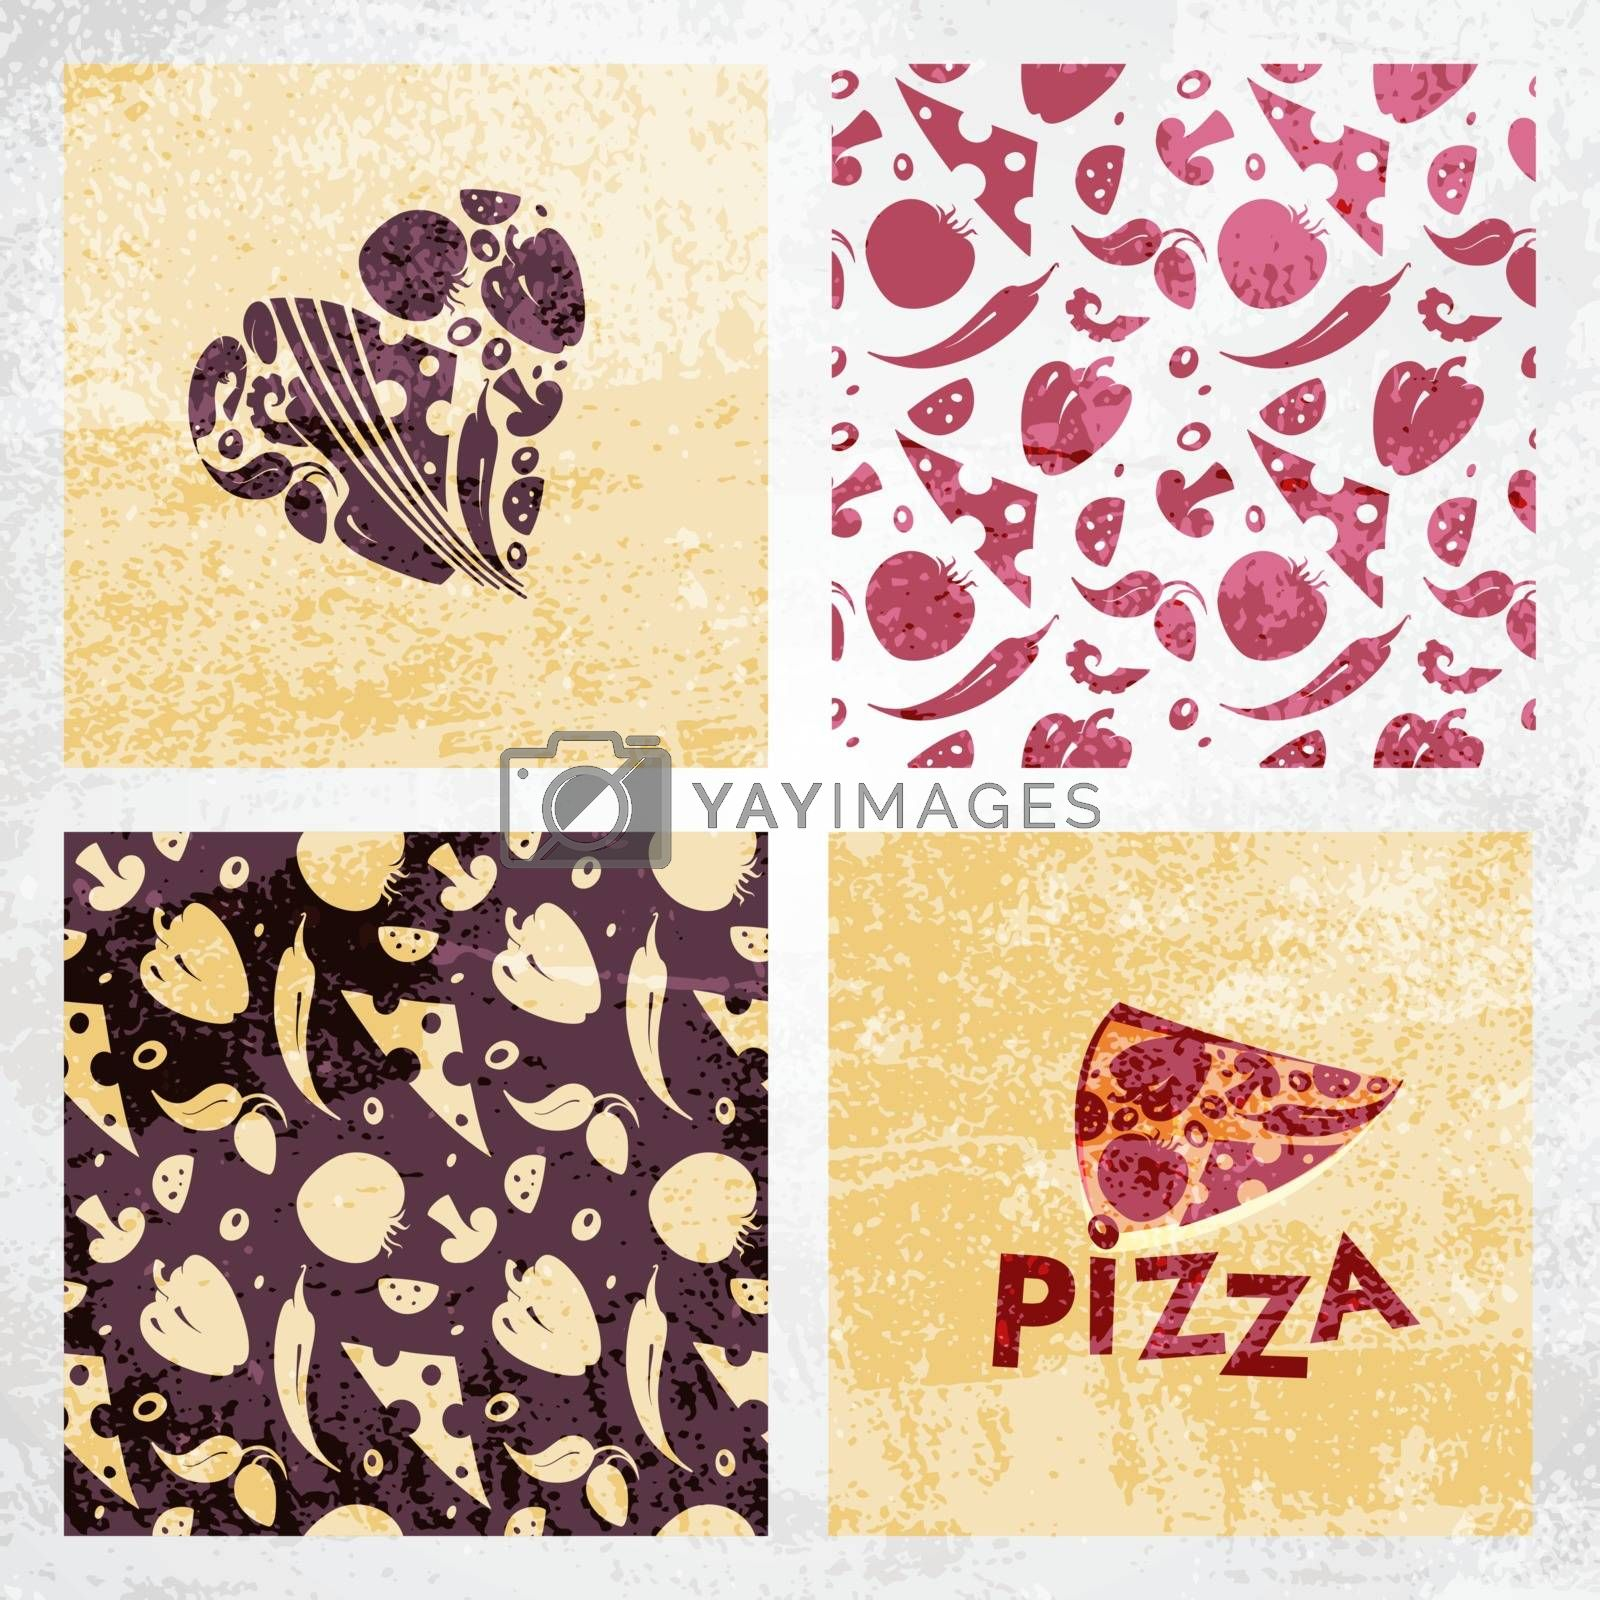 Illustration with a pizza background.